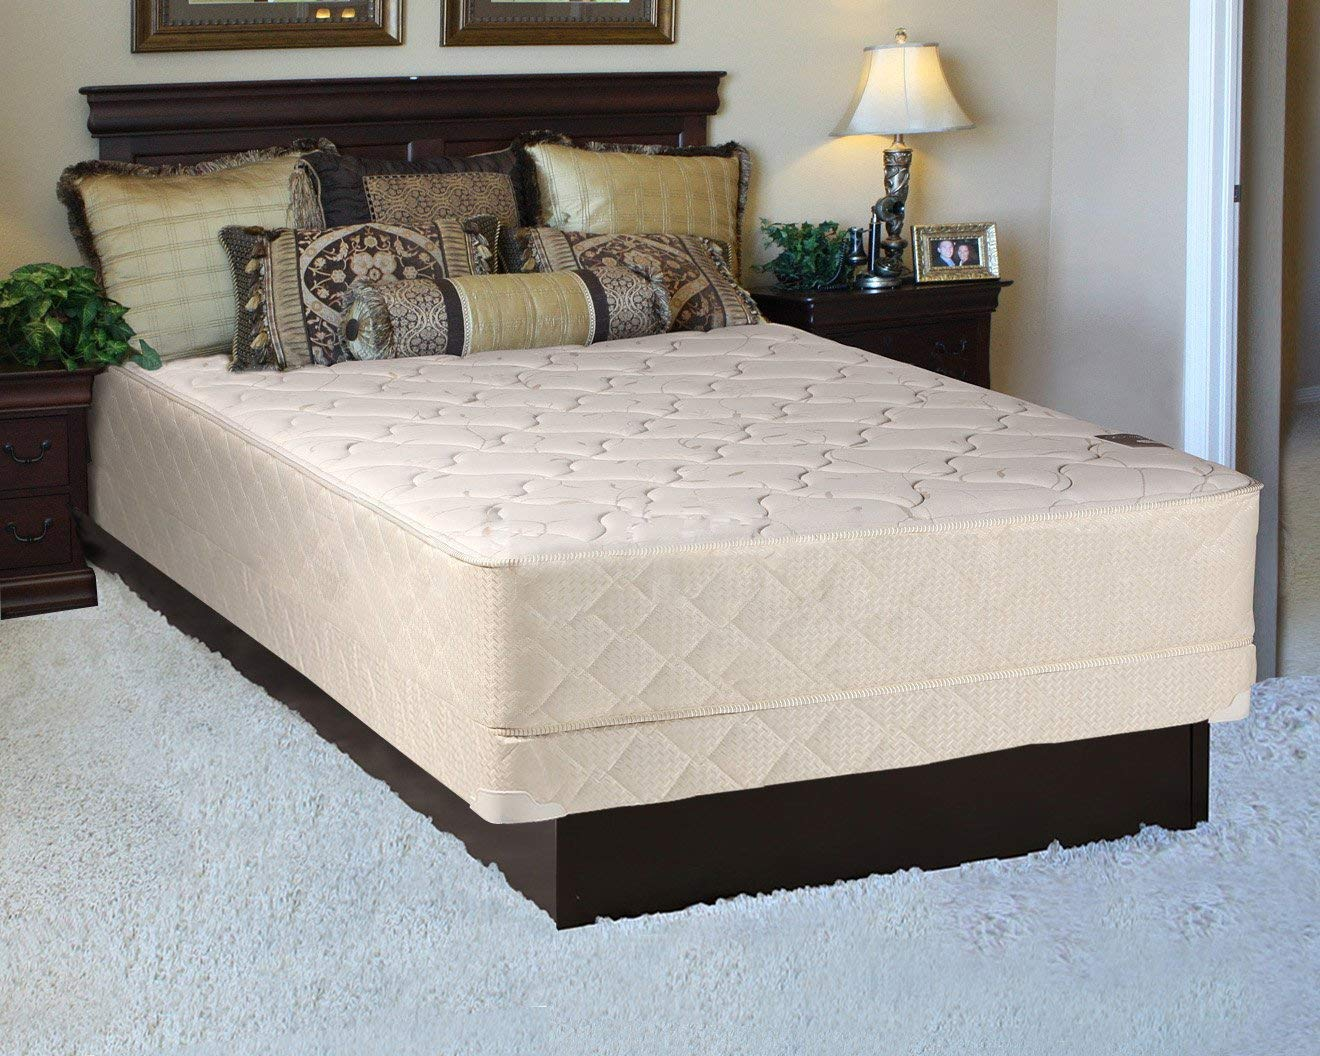 """Mattress Solution 225y-4/6-2LP 10-Inch Fully Assembled Innerspring Medium Plush Mattress and 4"""" Box Spring/Foundation Set, Full Size, White &LT Brown"""